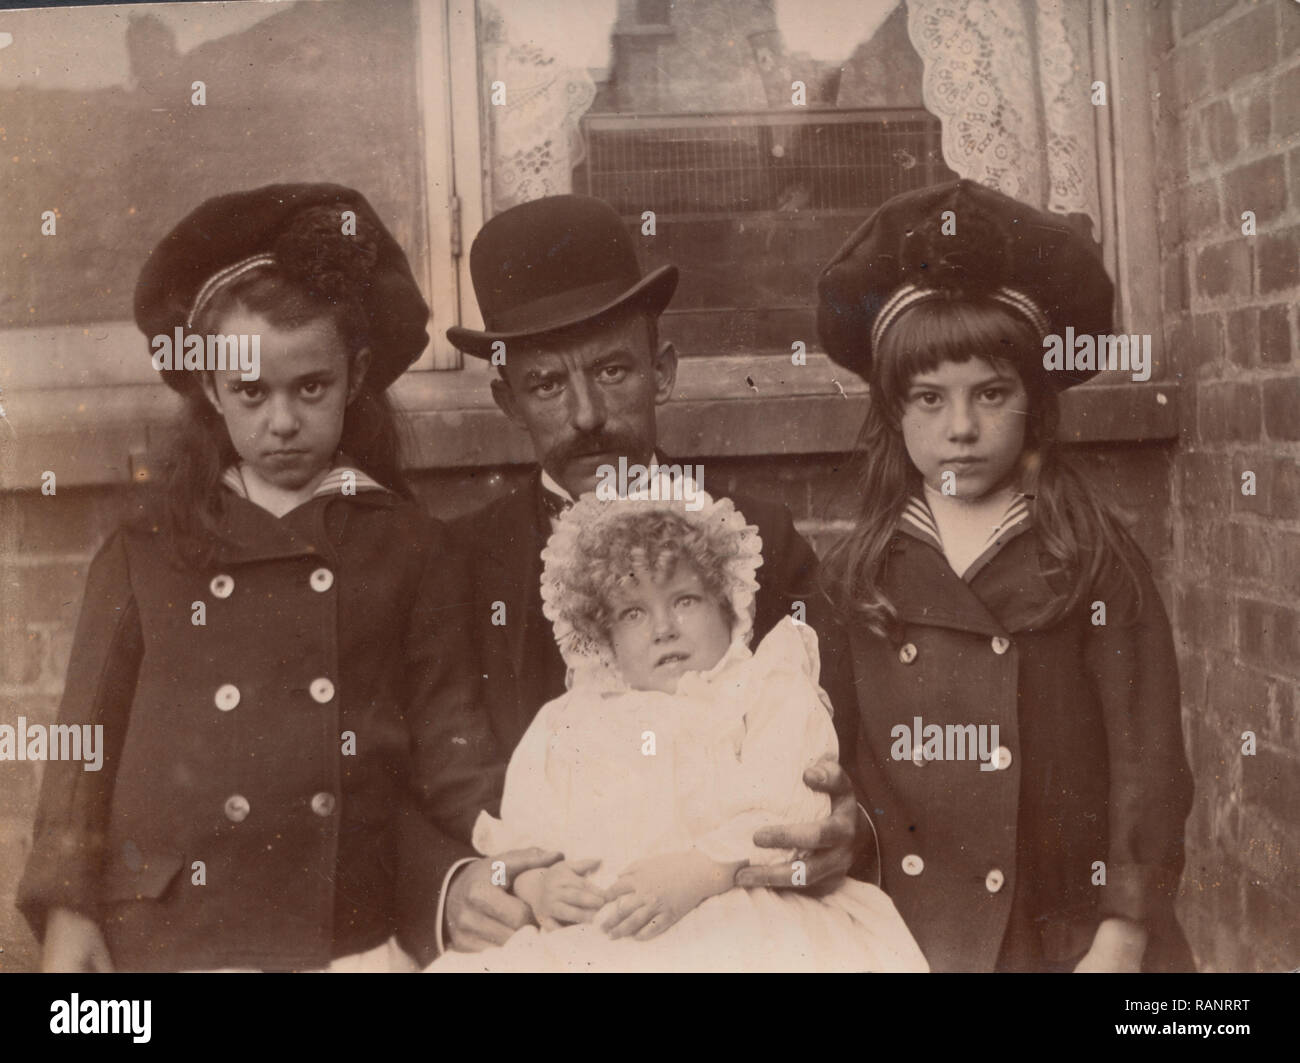 Vintage Victorian / Edwardian Photograph of a Father and His Three Daughters. The Youngest Child May Be Deceased Due To The Facial Expression. - Stock Image